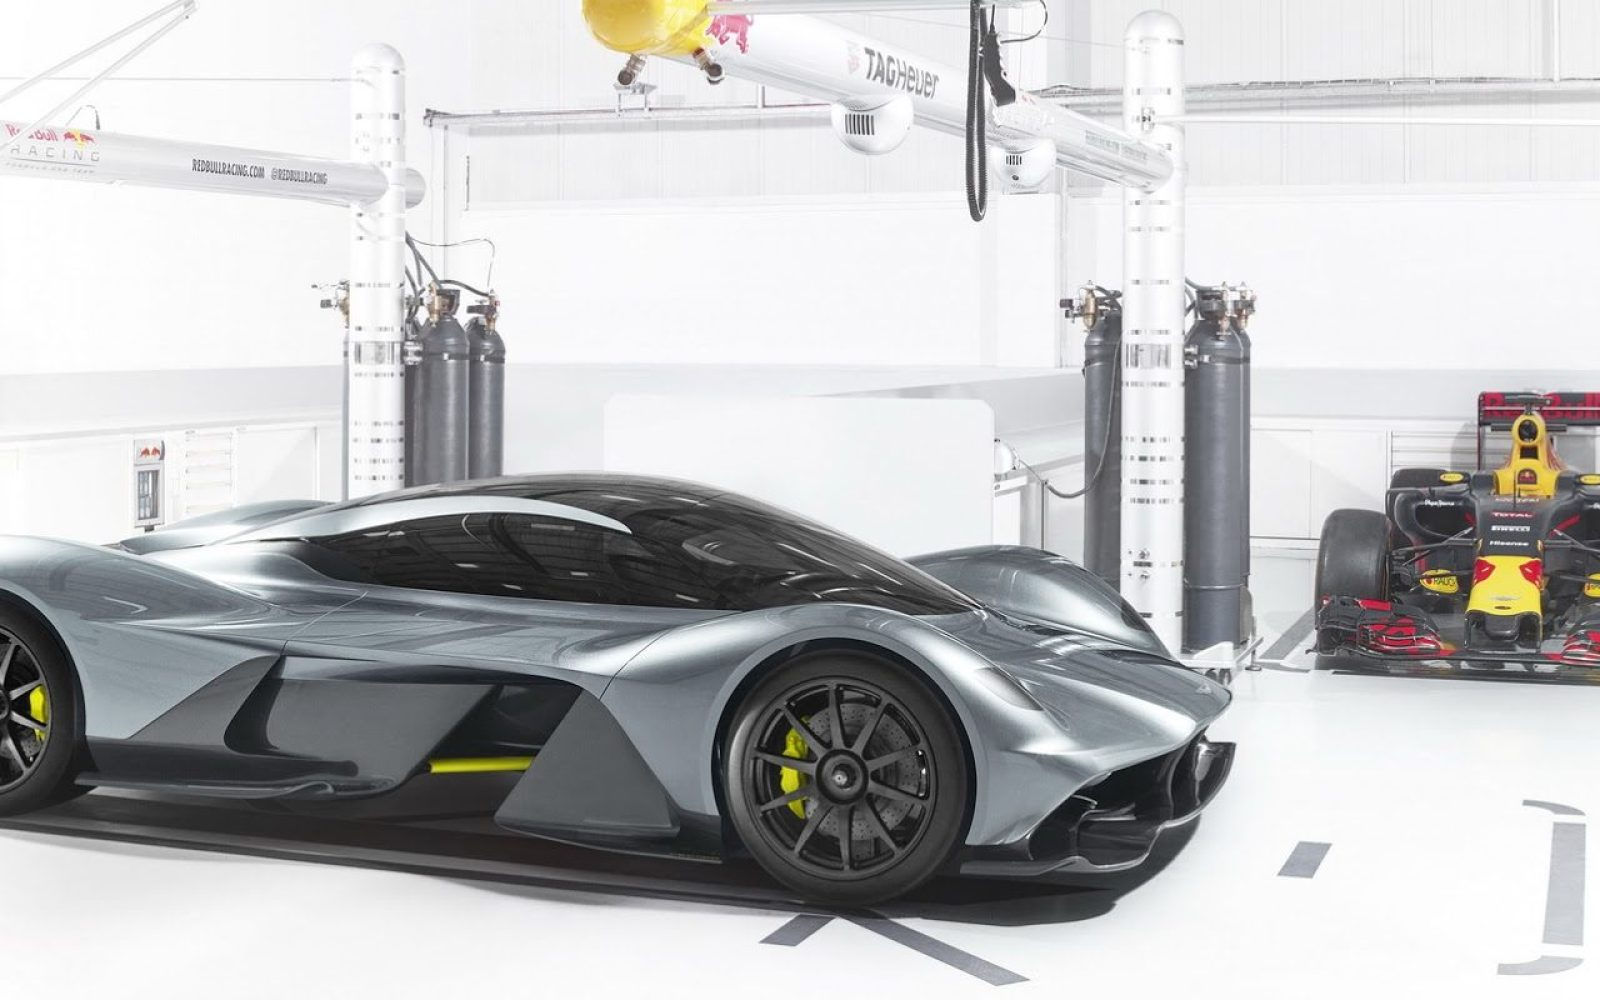 Aston Martin's upcoming new hypercar will have a battery pack supplied by Rimac